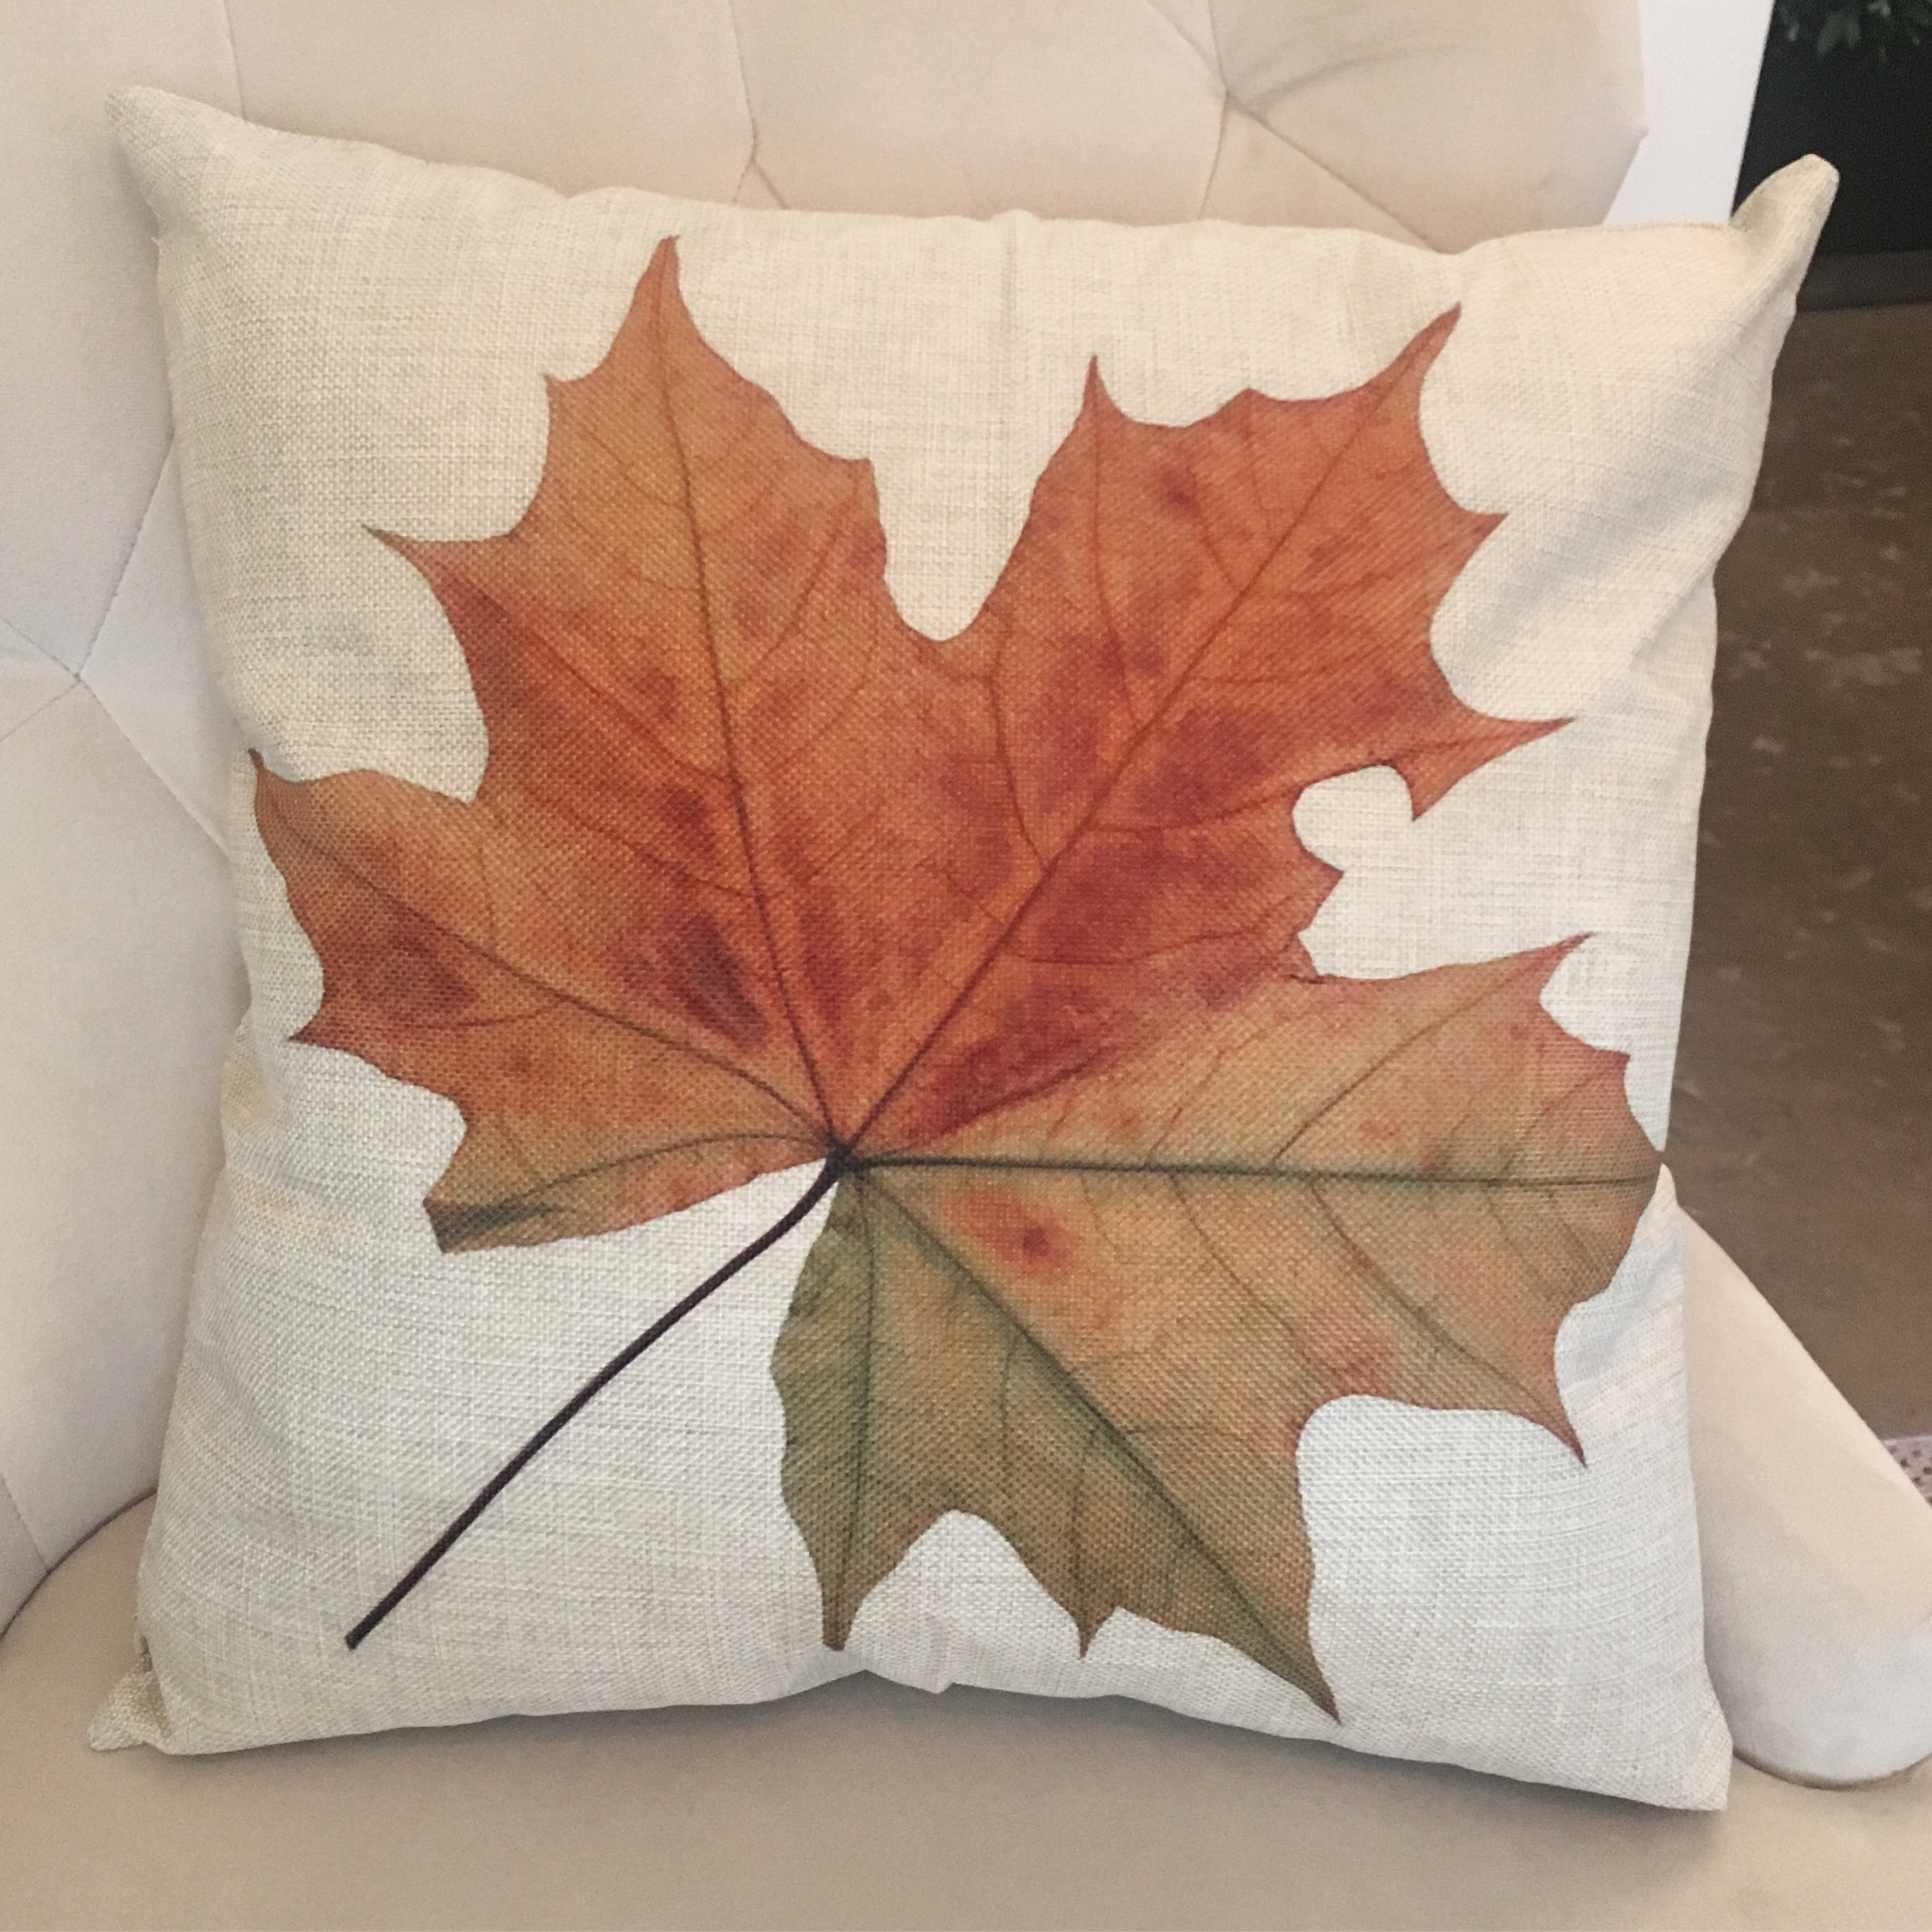 Autumn Leaf Pillow, $18.99